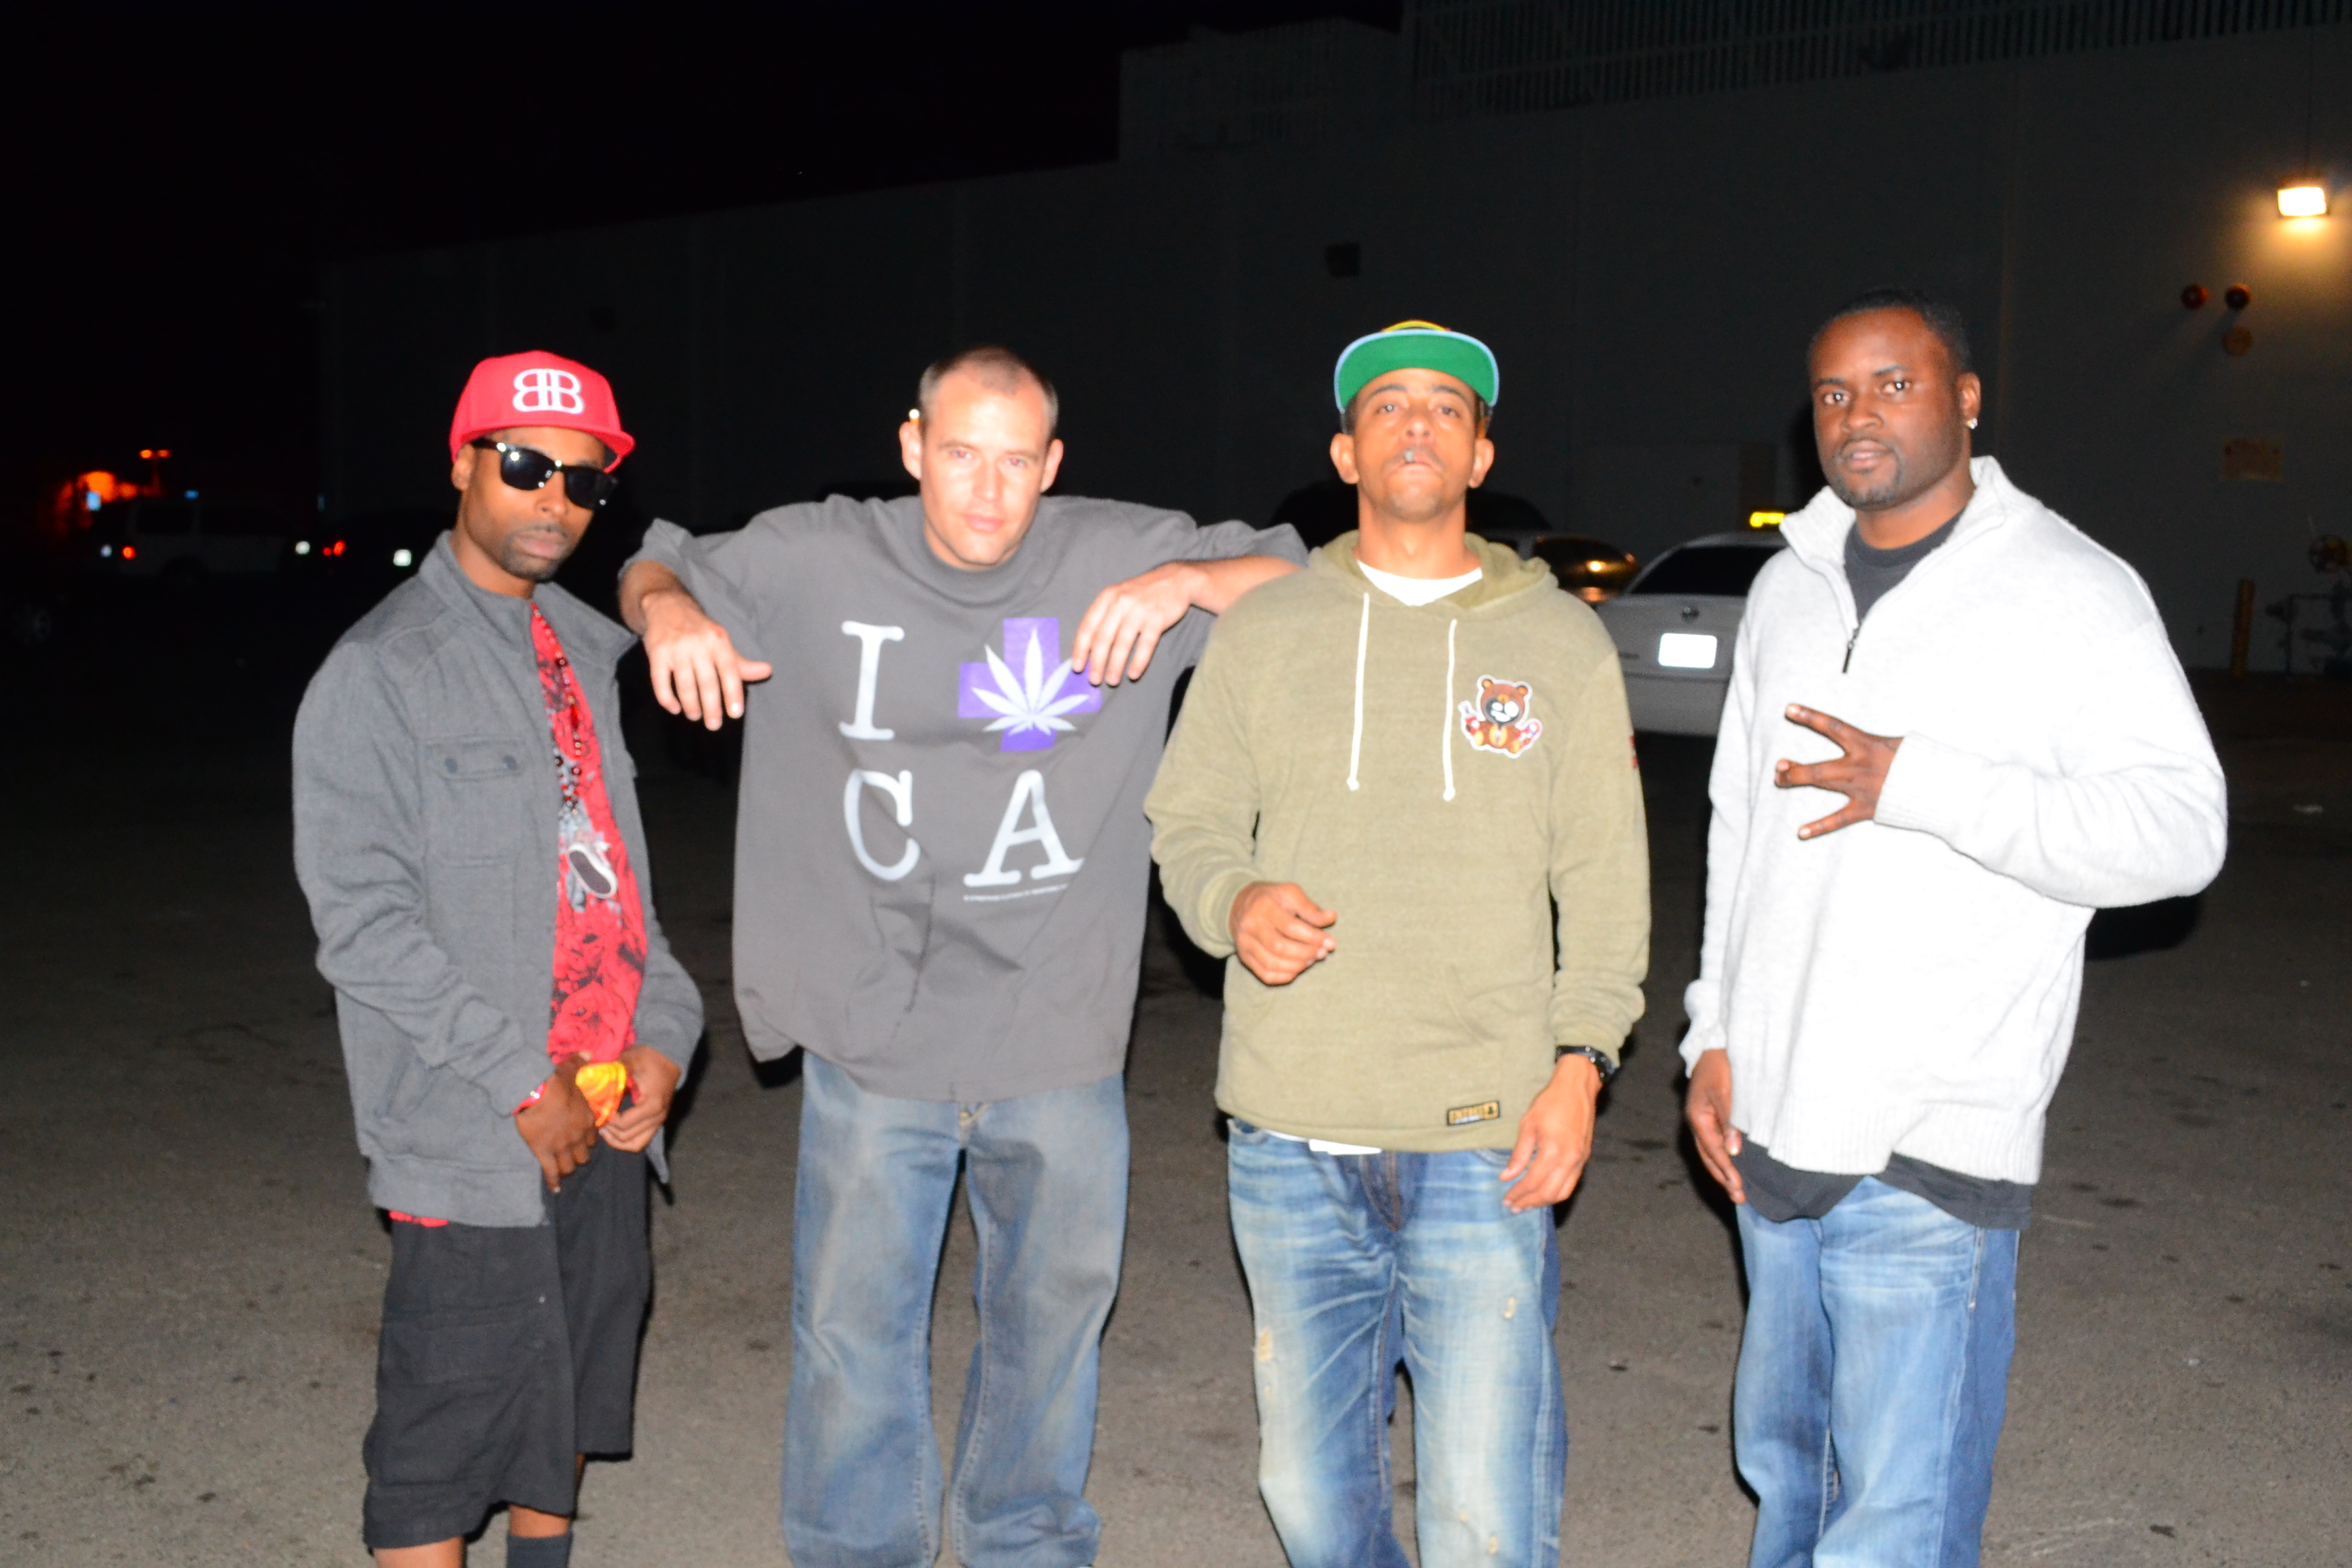 The General, DJ Lime Green, Phil Tha Agony